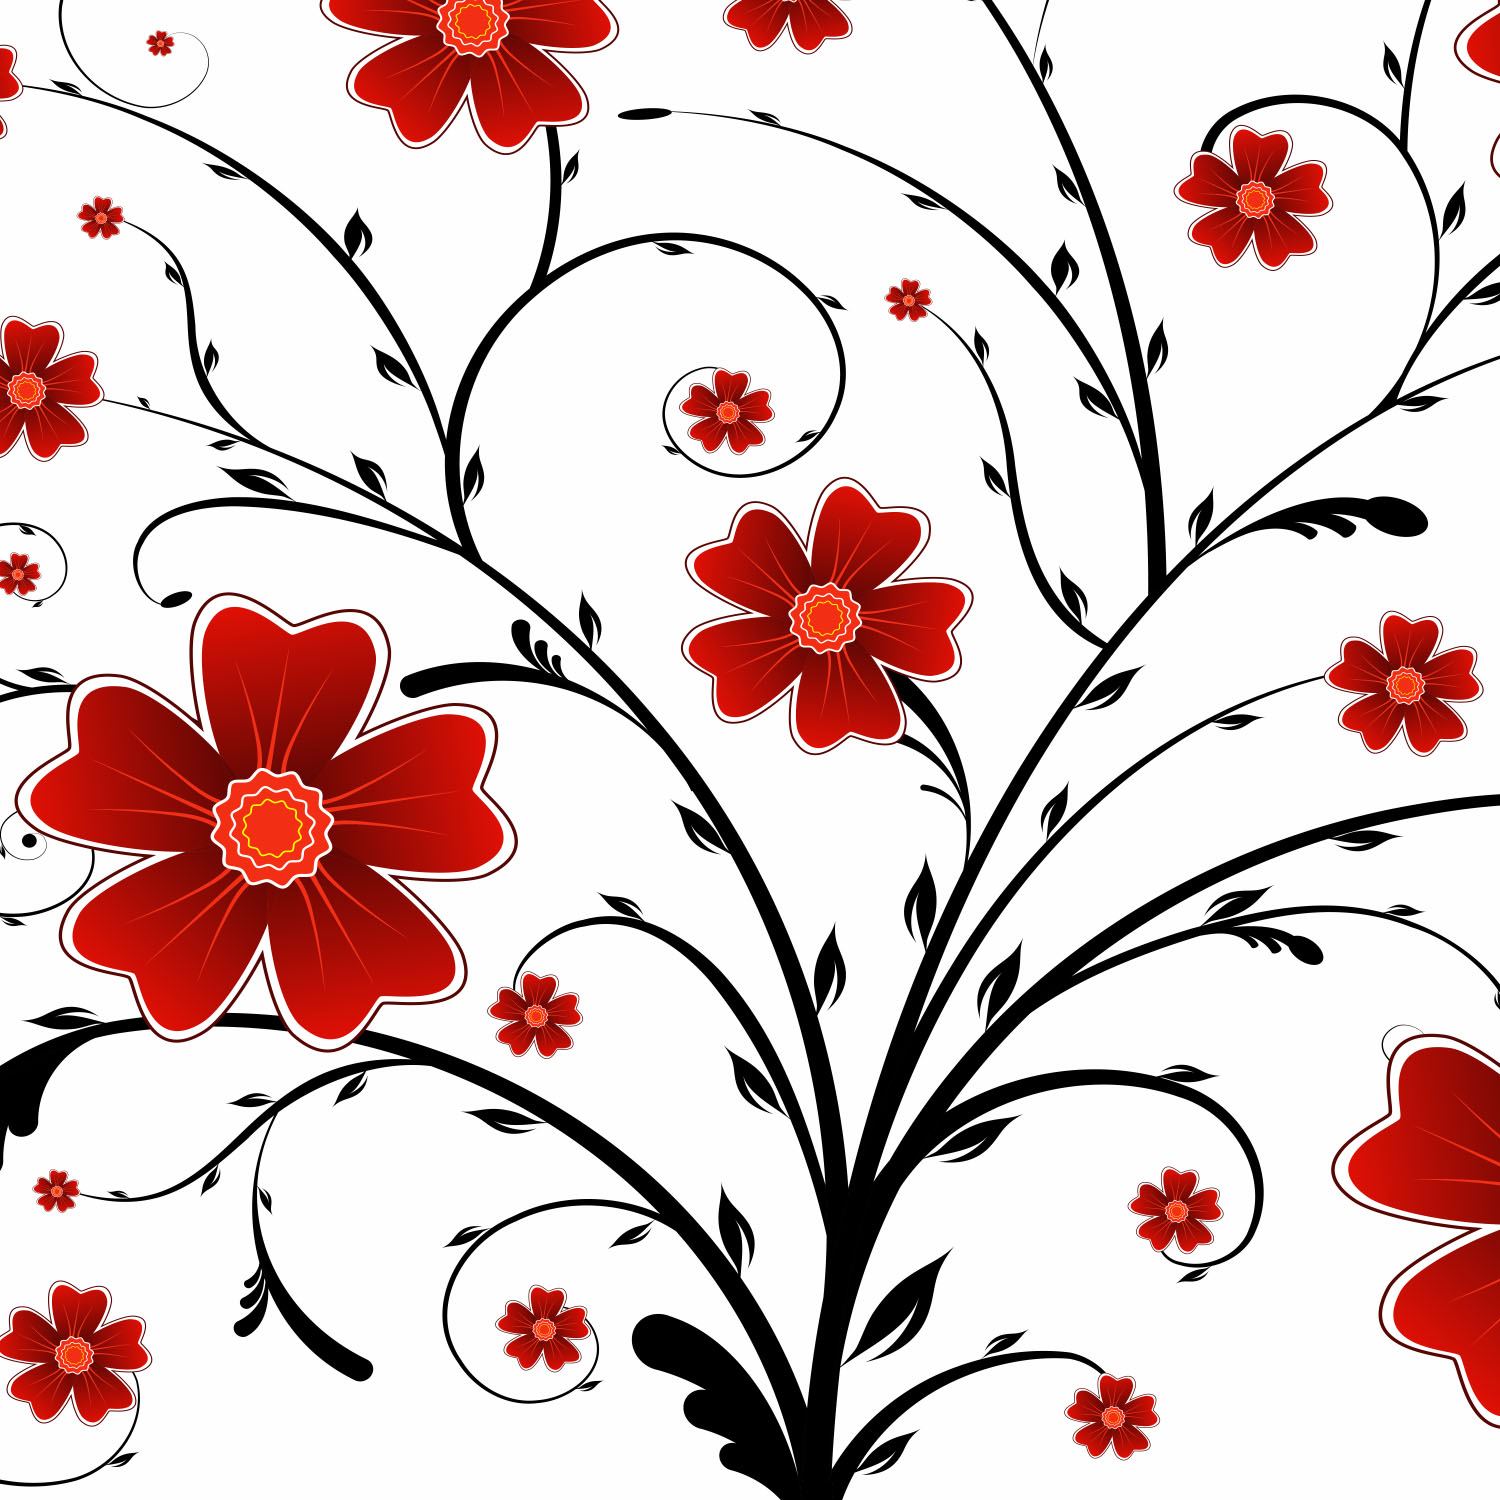 Arte Floral Vetor Free Background Floral Cliparts Download Free Clip Art Free Clip